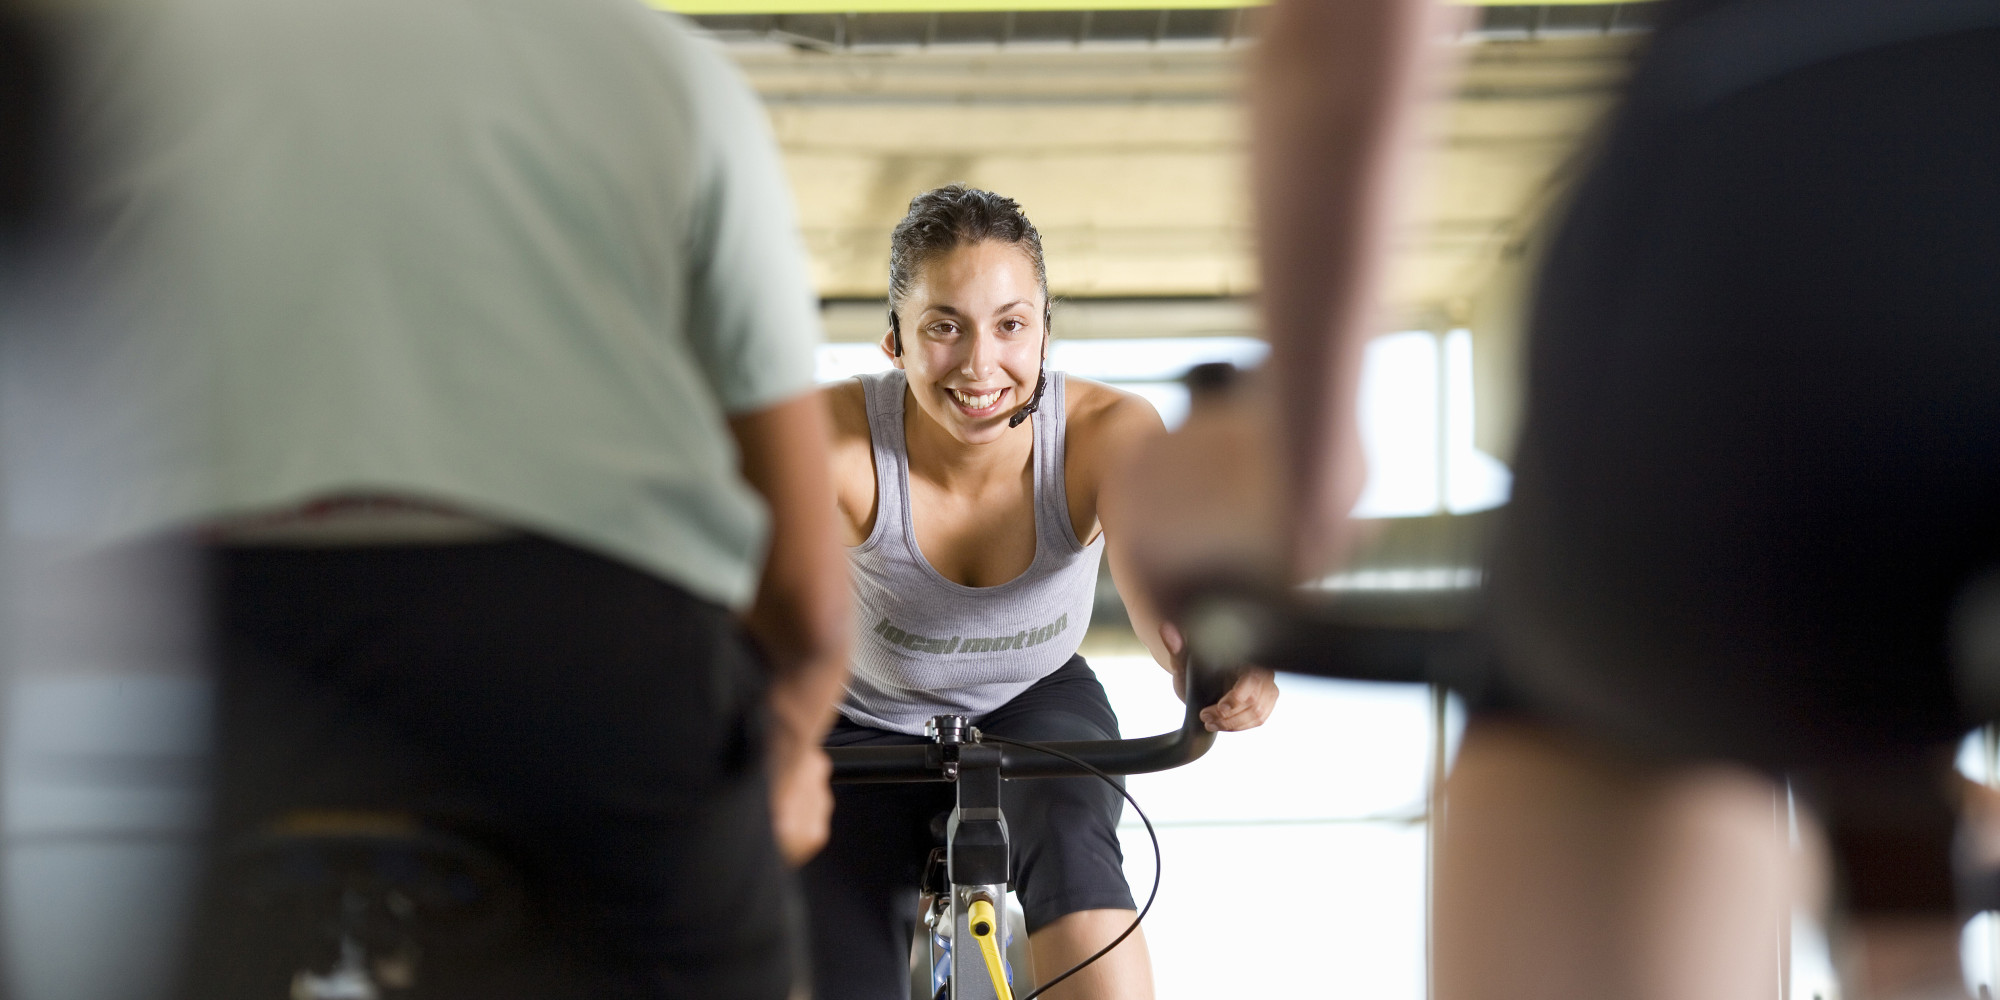 What It's Like To Be An Indoor Cycling Instructor | HuffPost